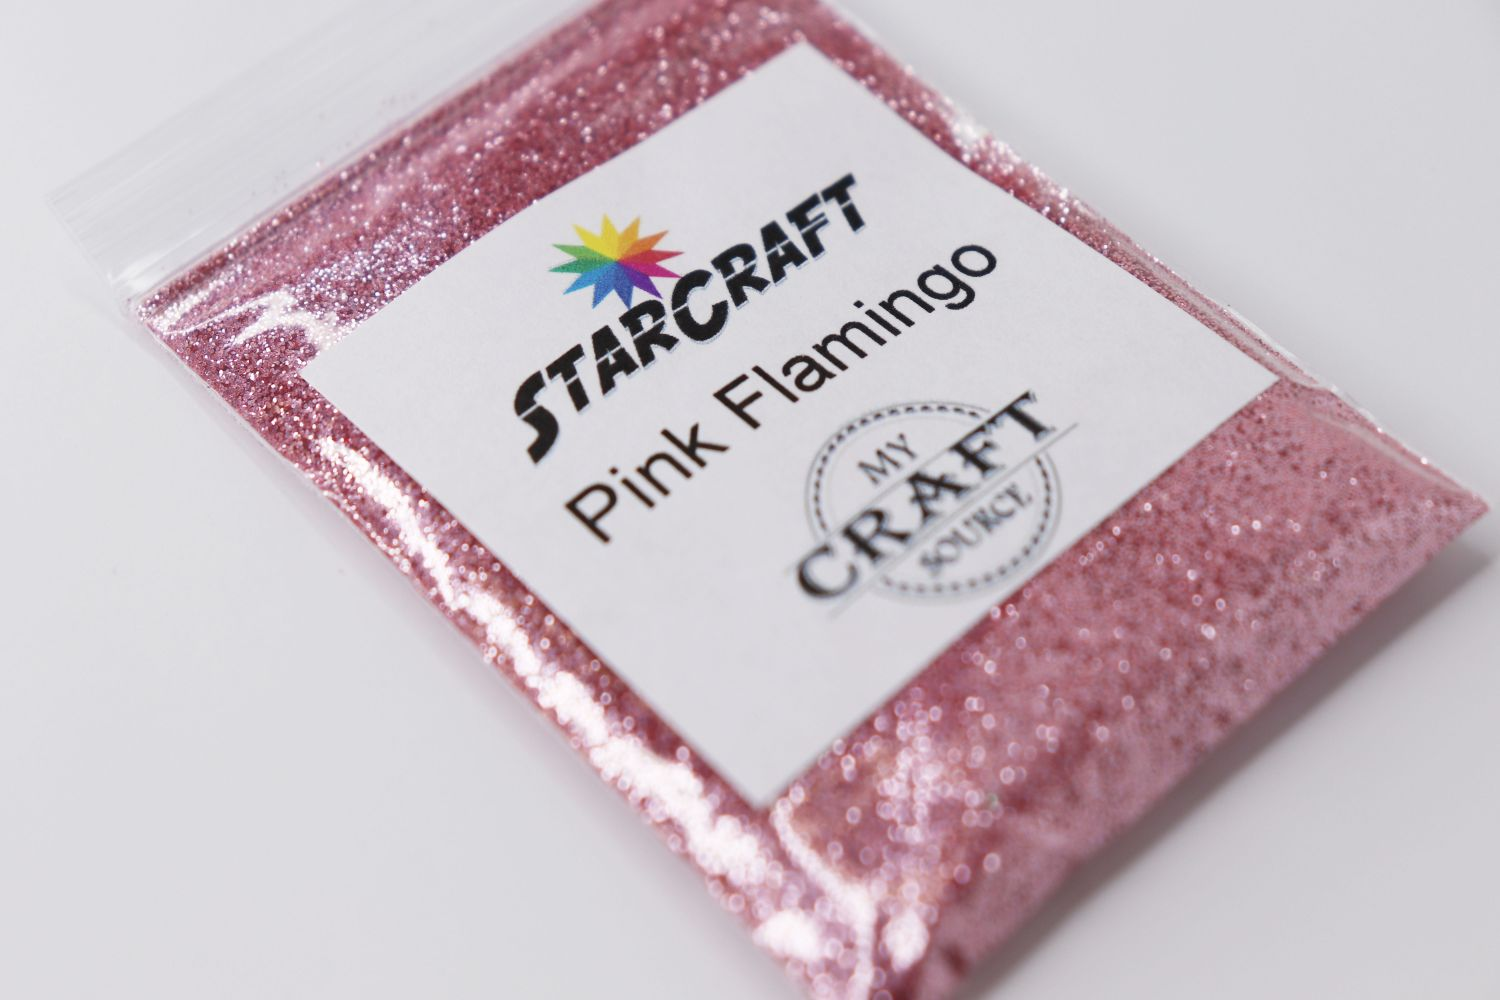 StarCraft Metallic Glitter - Pink Flamingo - 0.5 oz